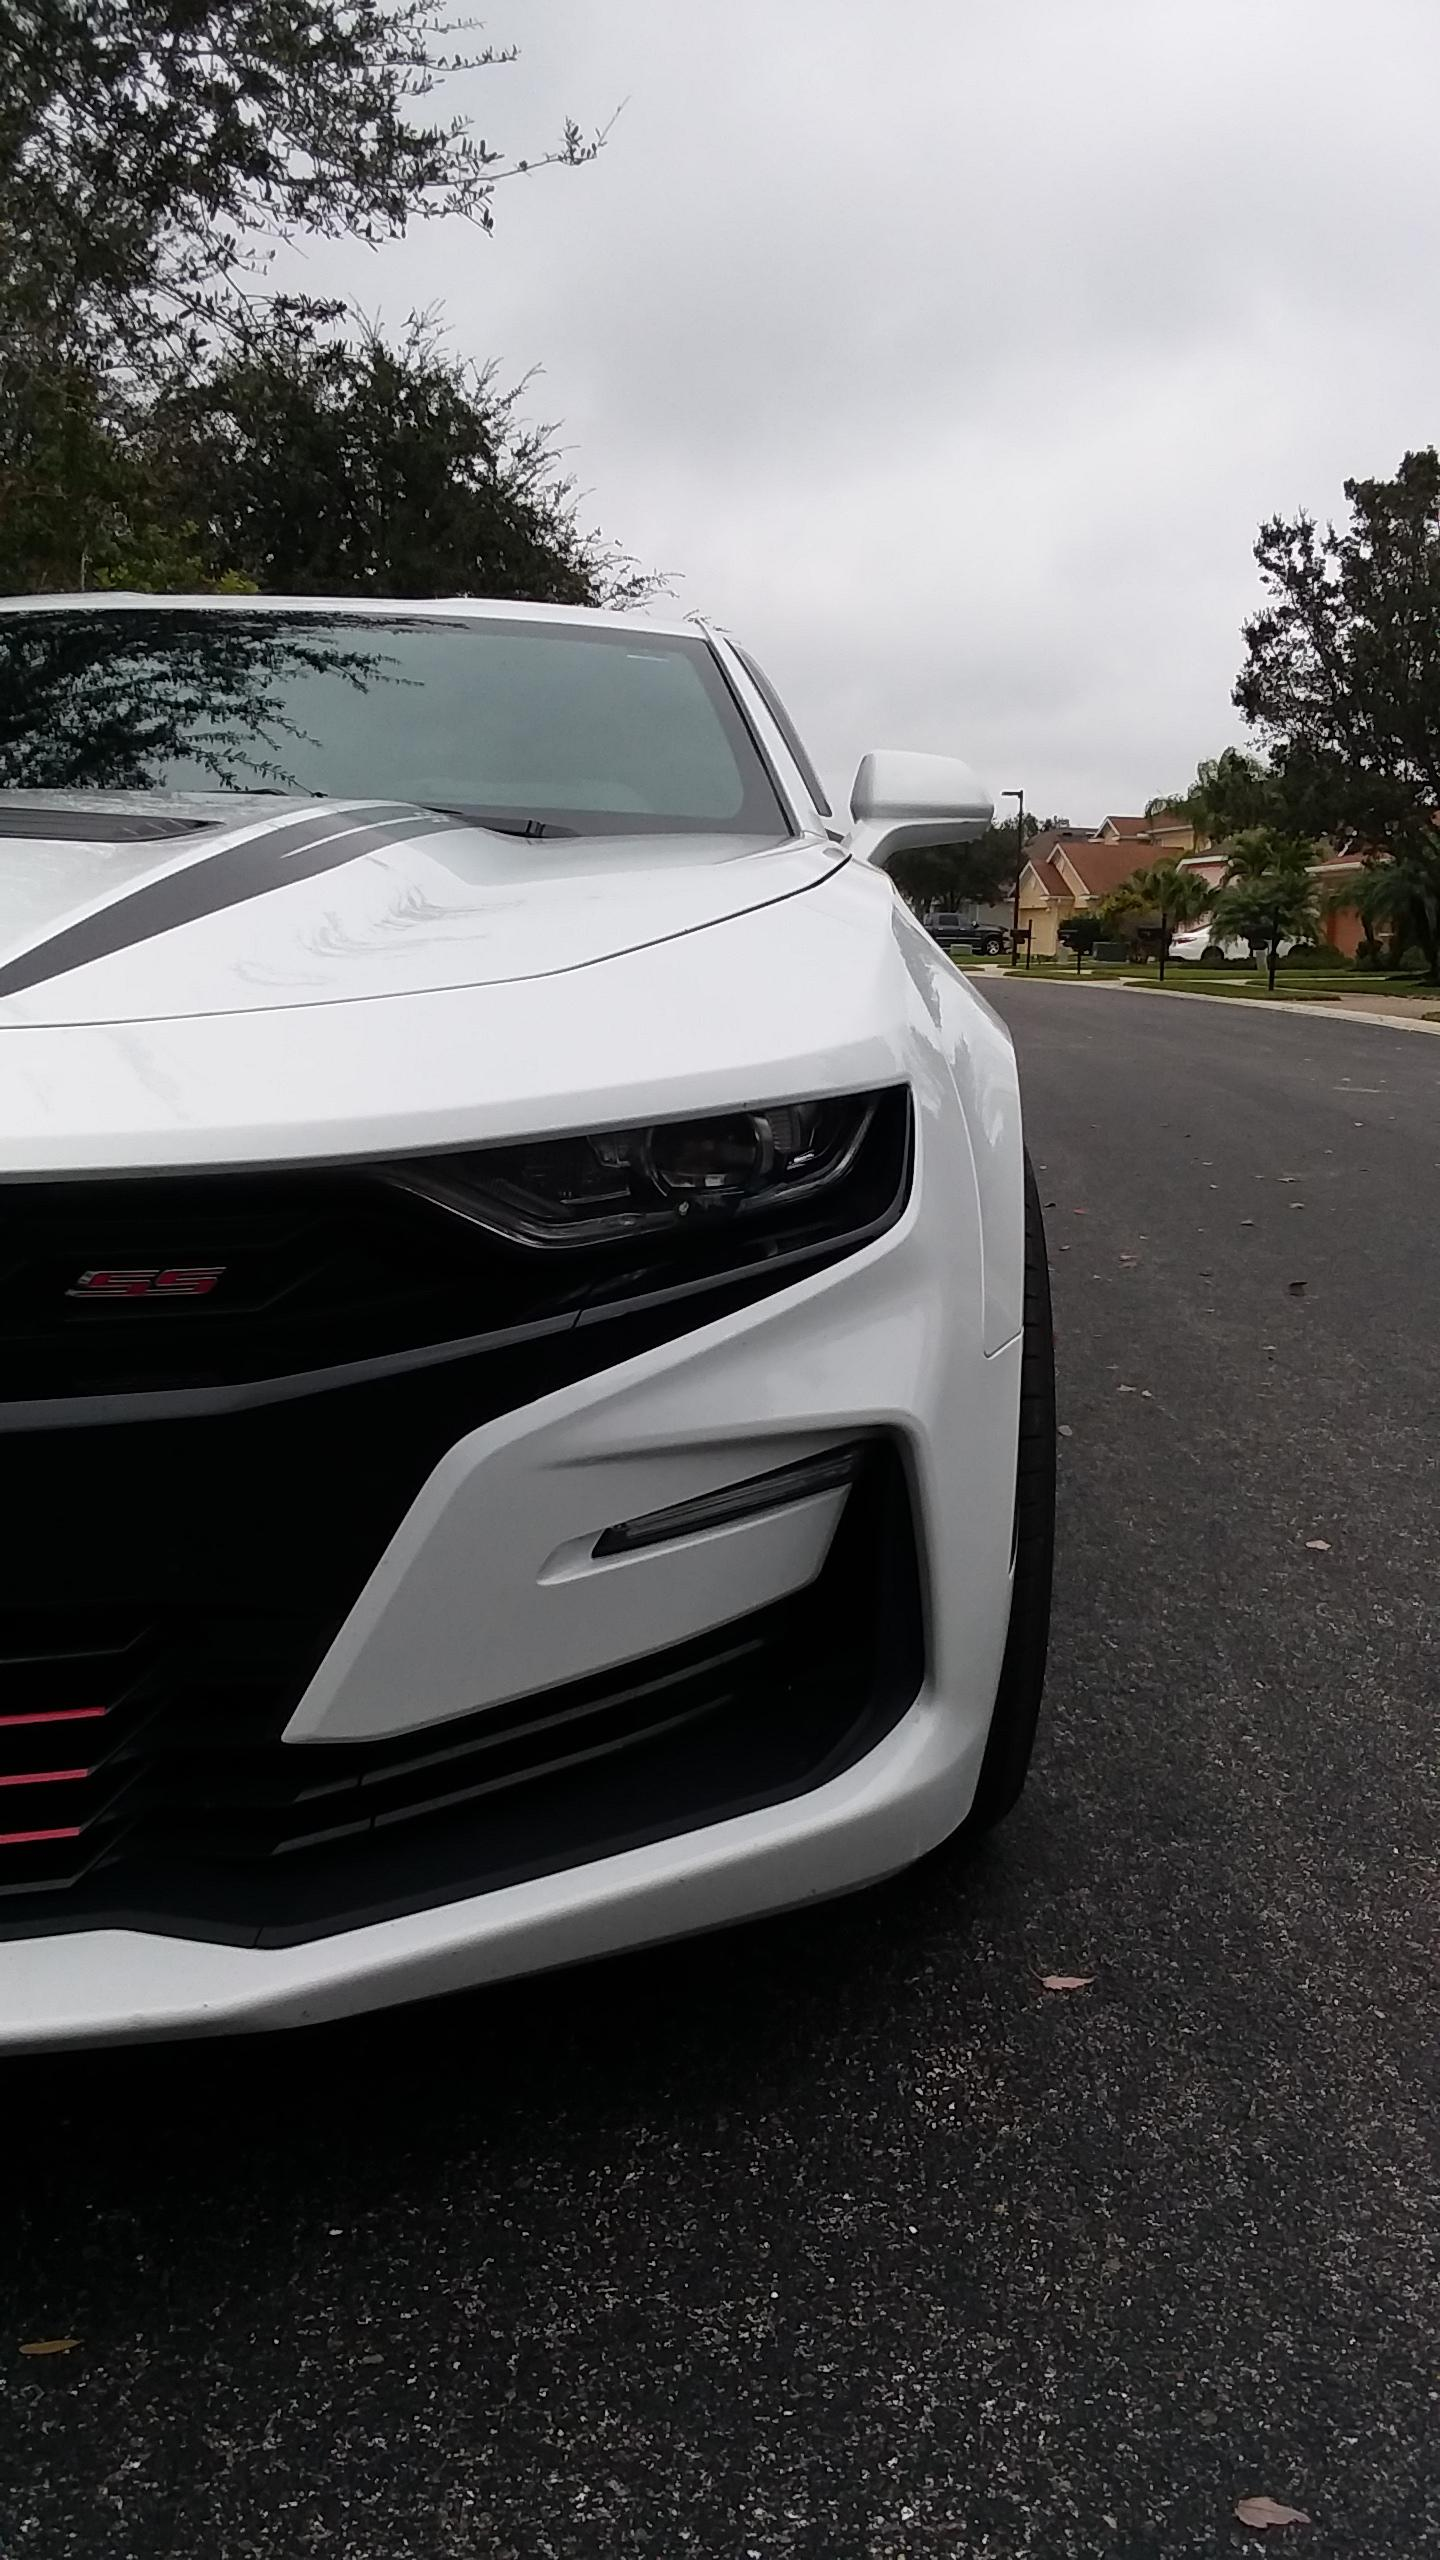 My friends neighbors camaro